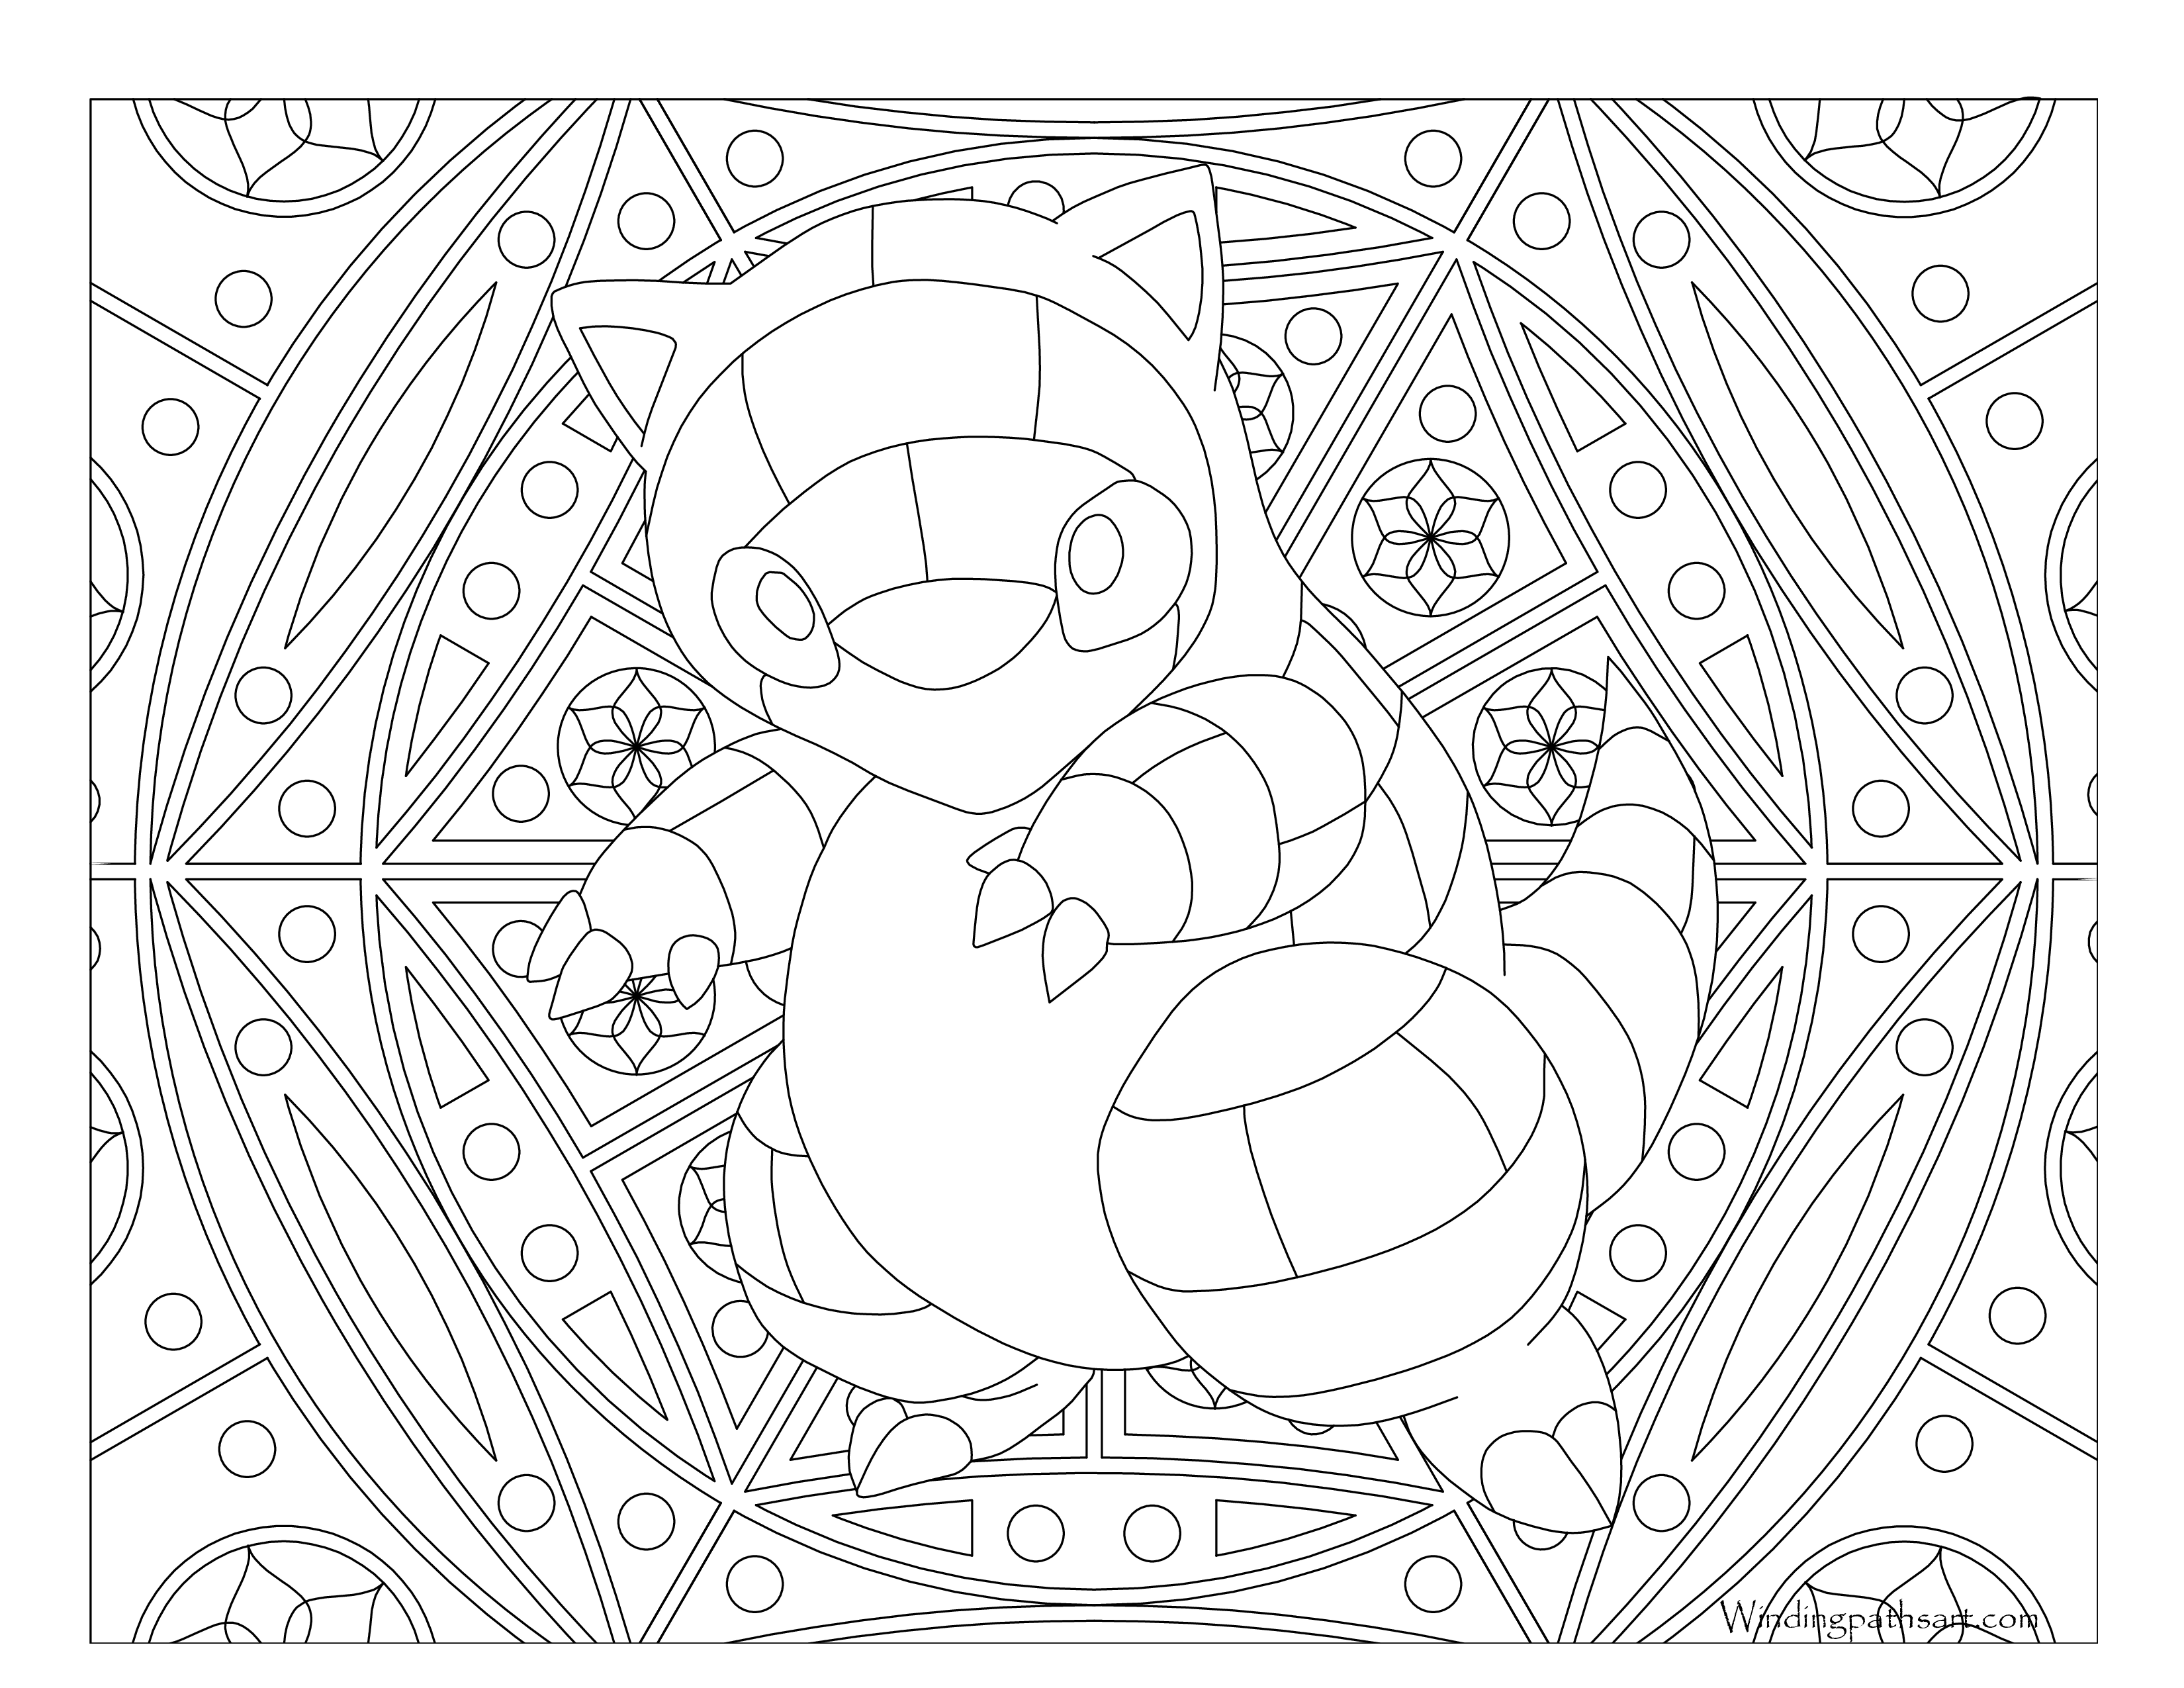 sandslash pokemon coloring pages - photo#32